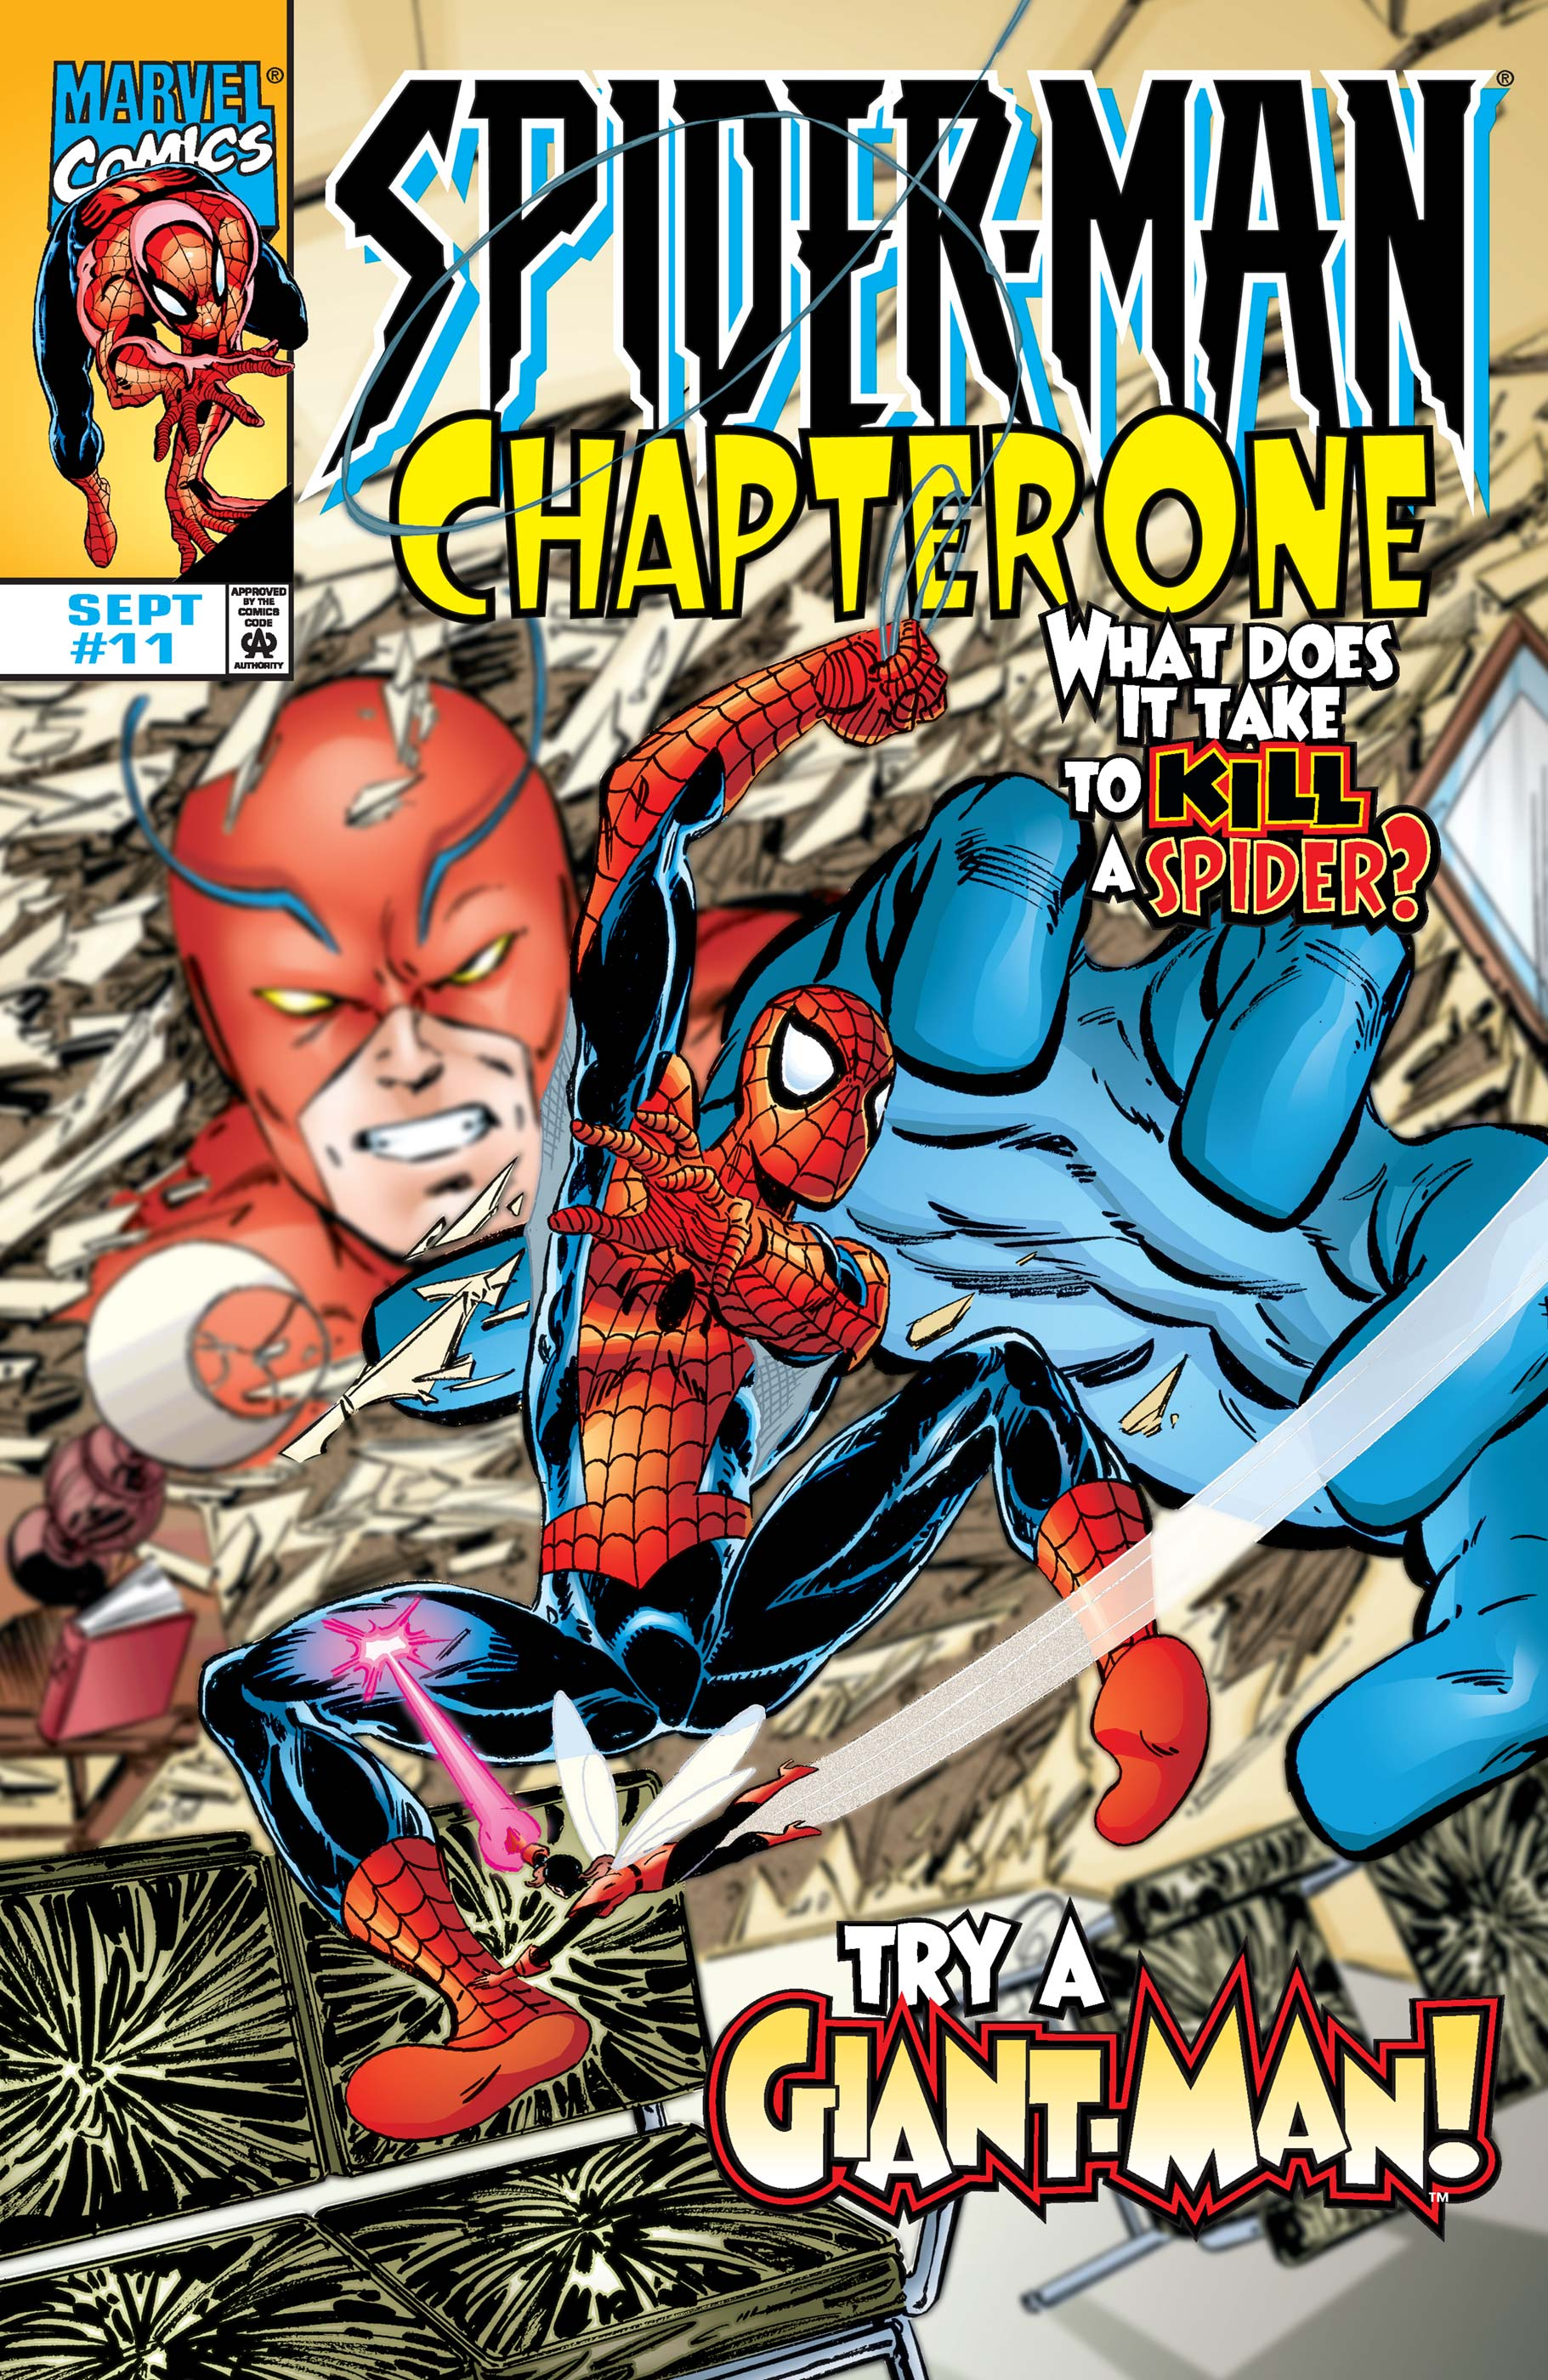 Spider-Man: Chapter One (1998) #11